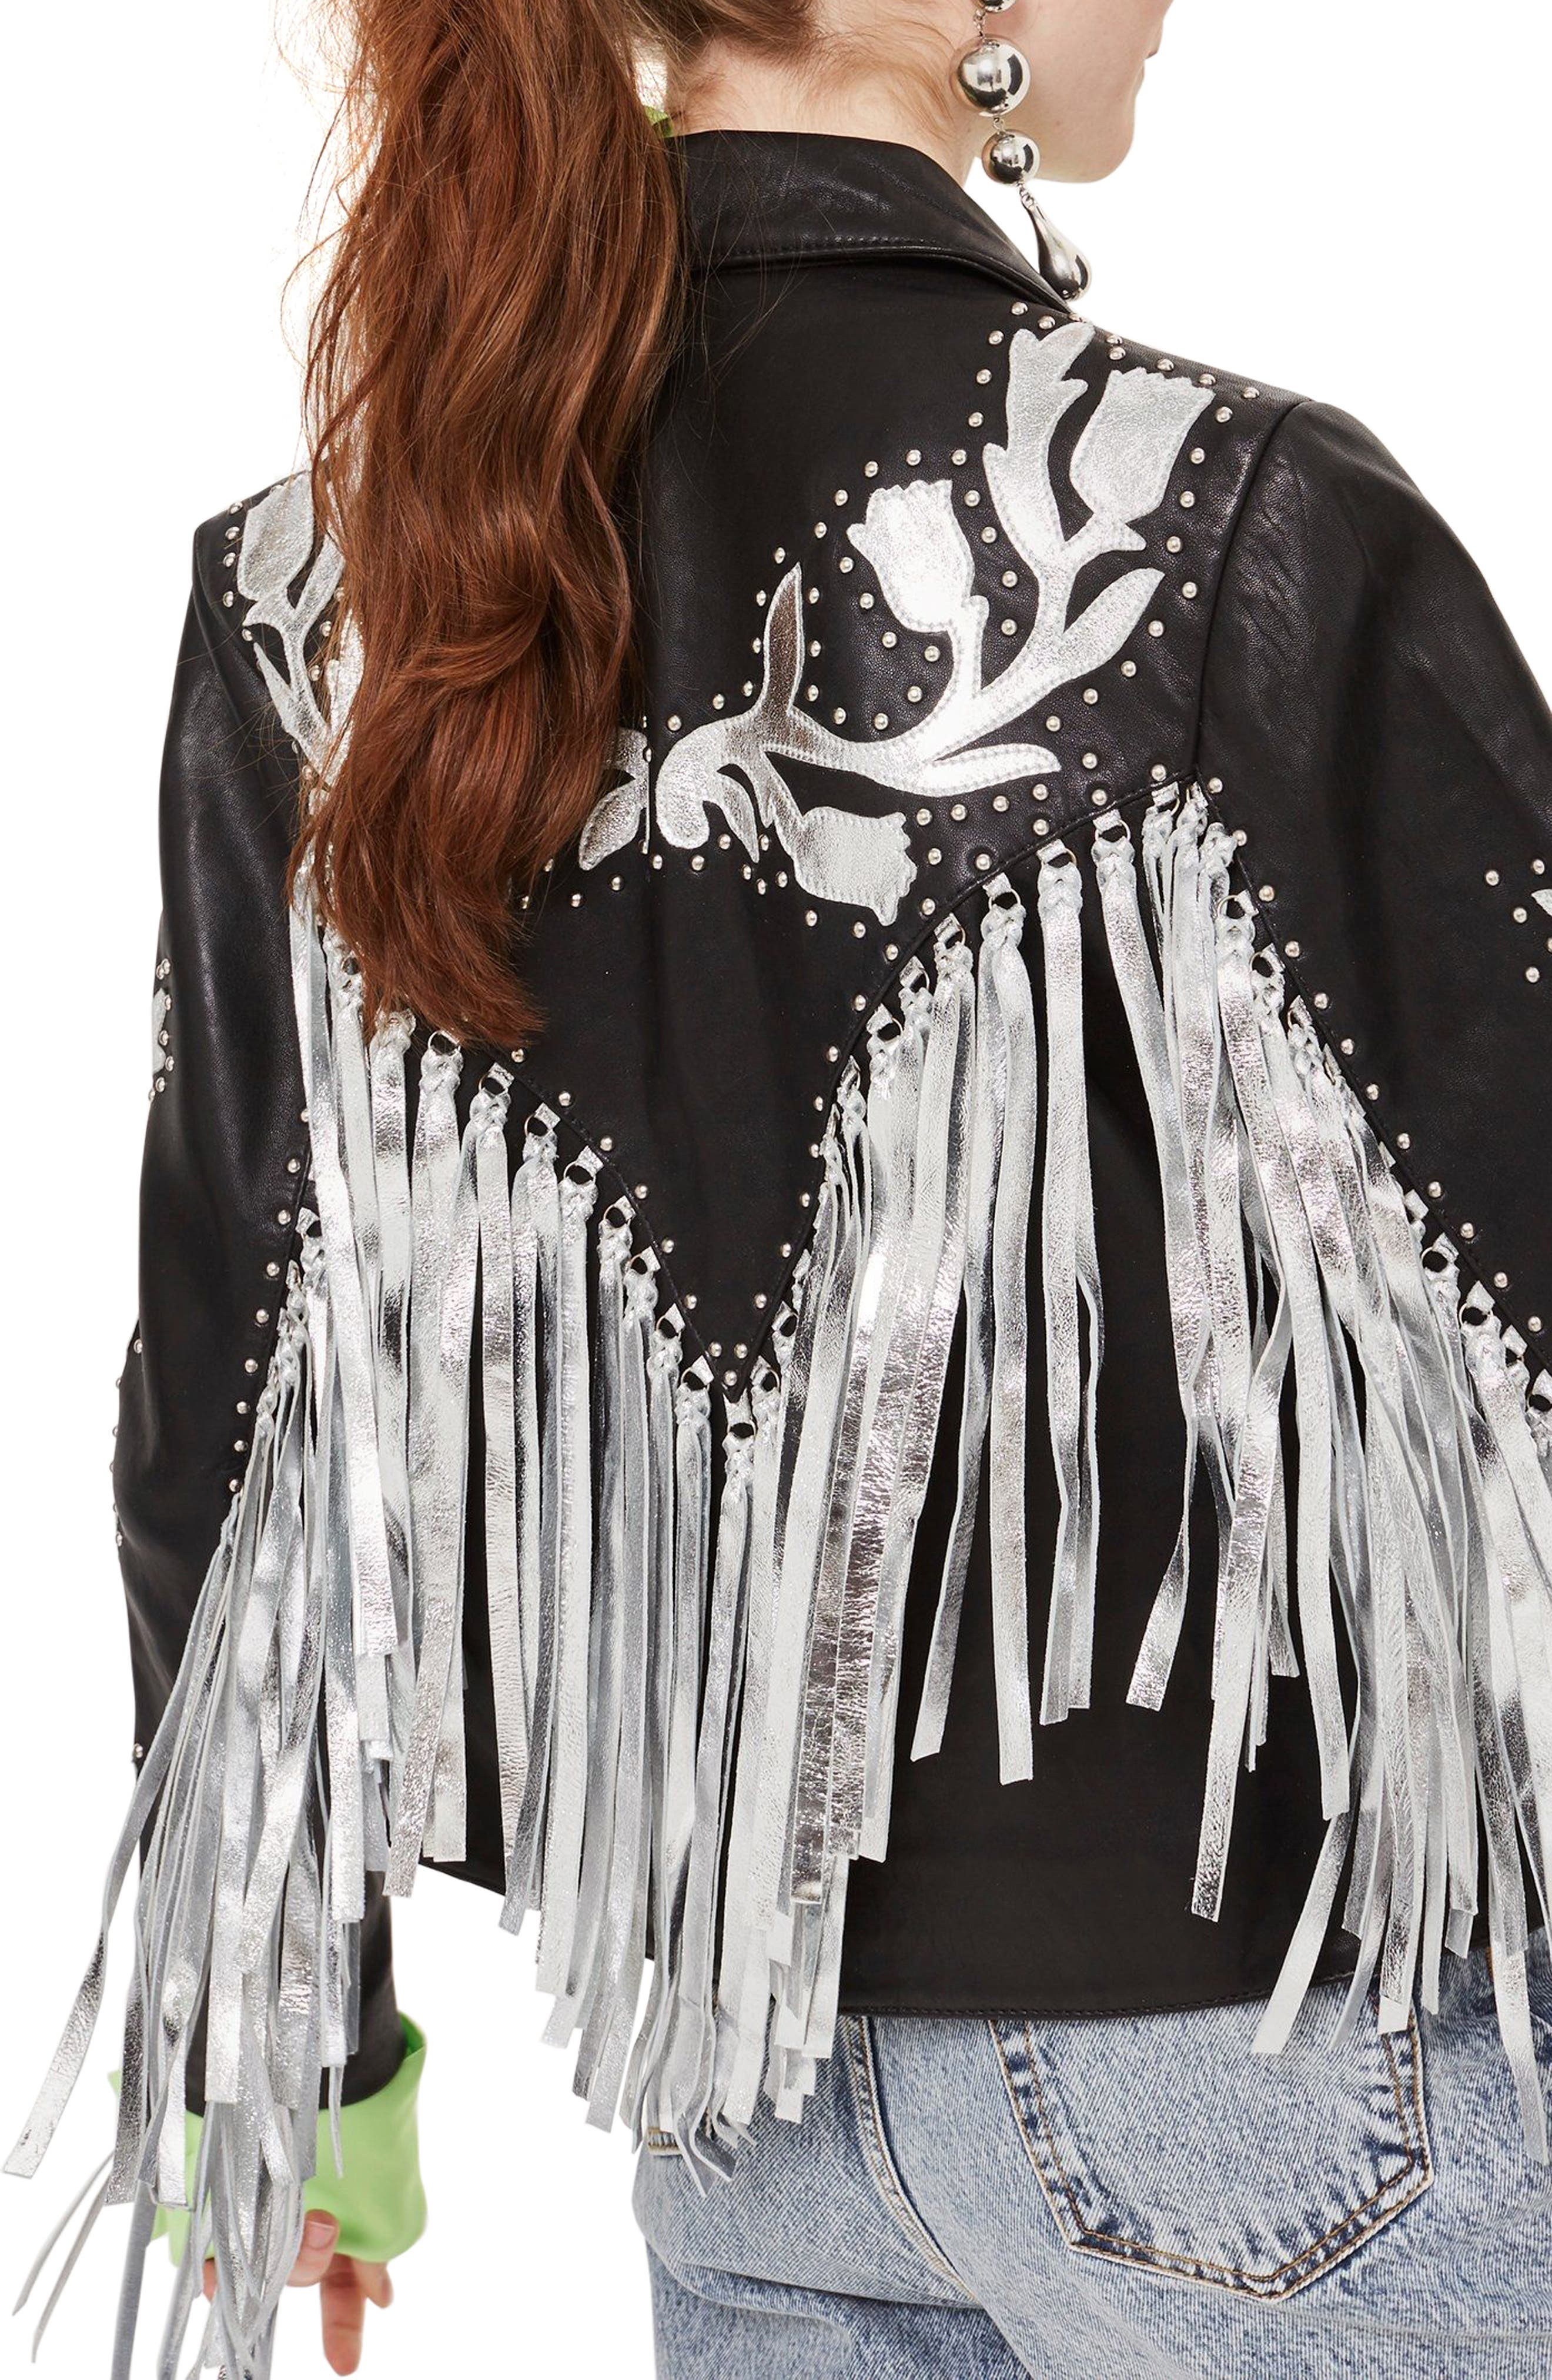 Austin Floral Silver Fringed Leather Jacket,                             Alternate thumbnail 2, color,                             Black Multi